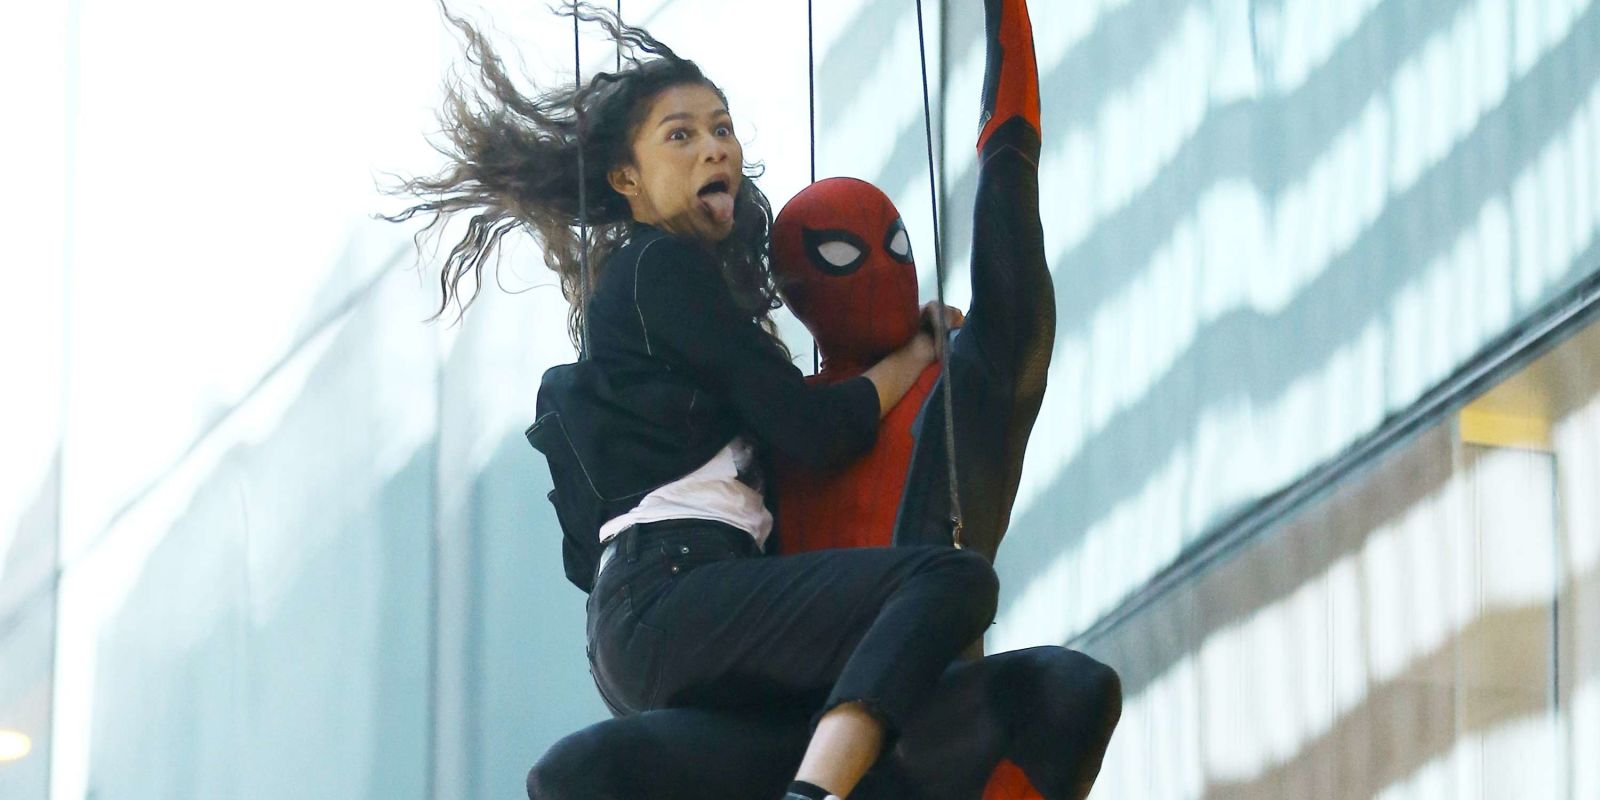 spider-man: far from home reveals first look at new spidey suit